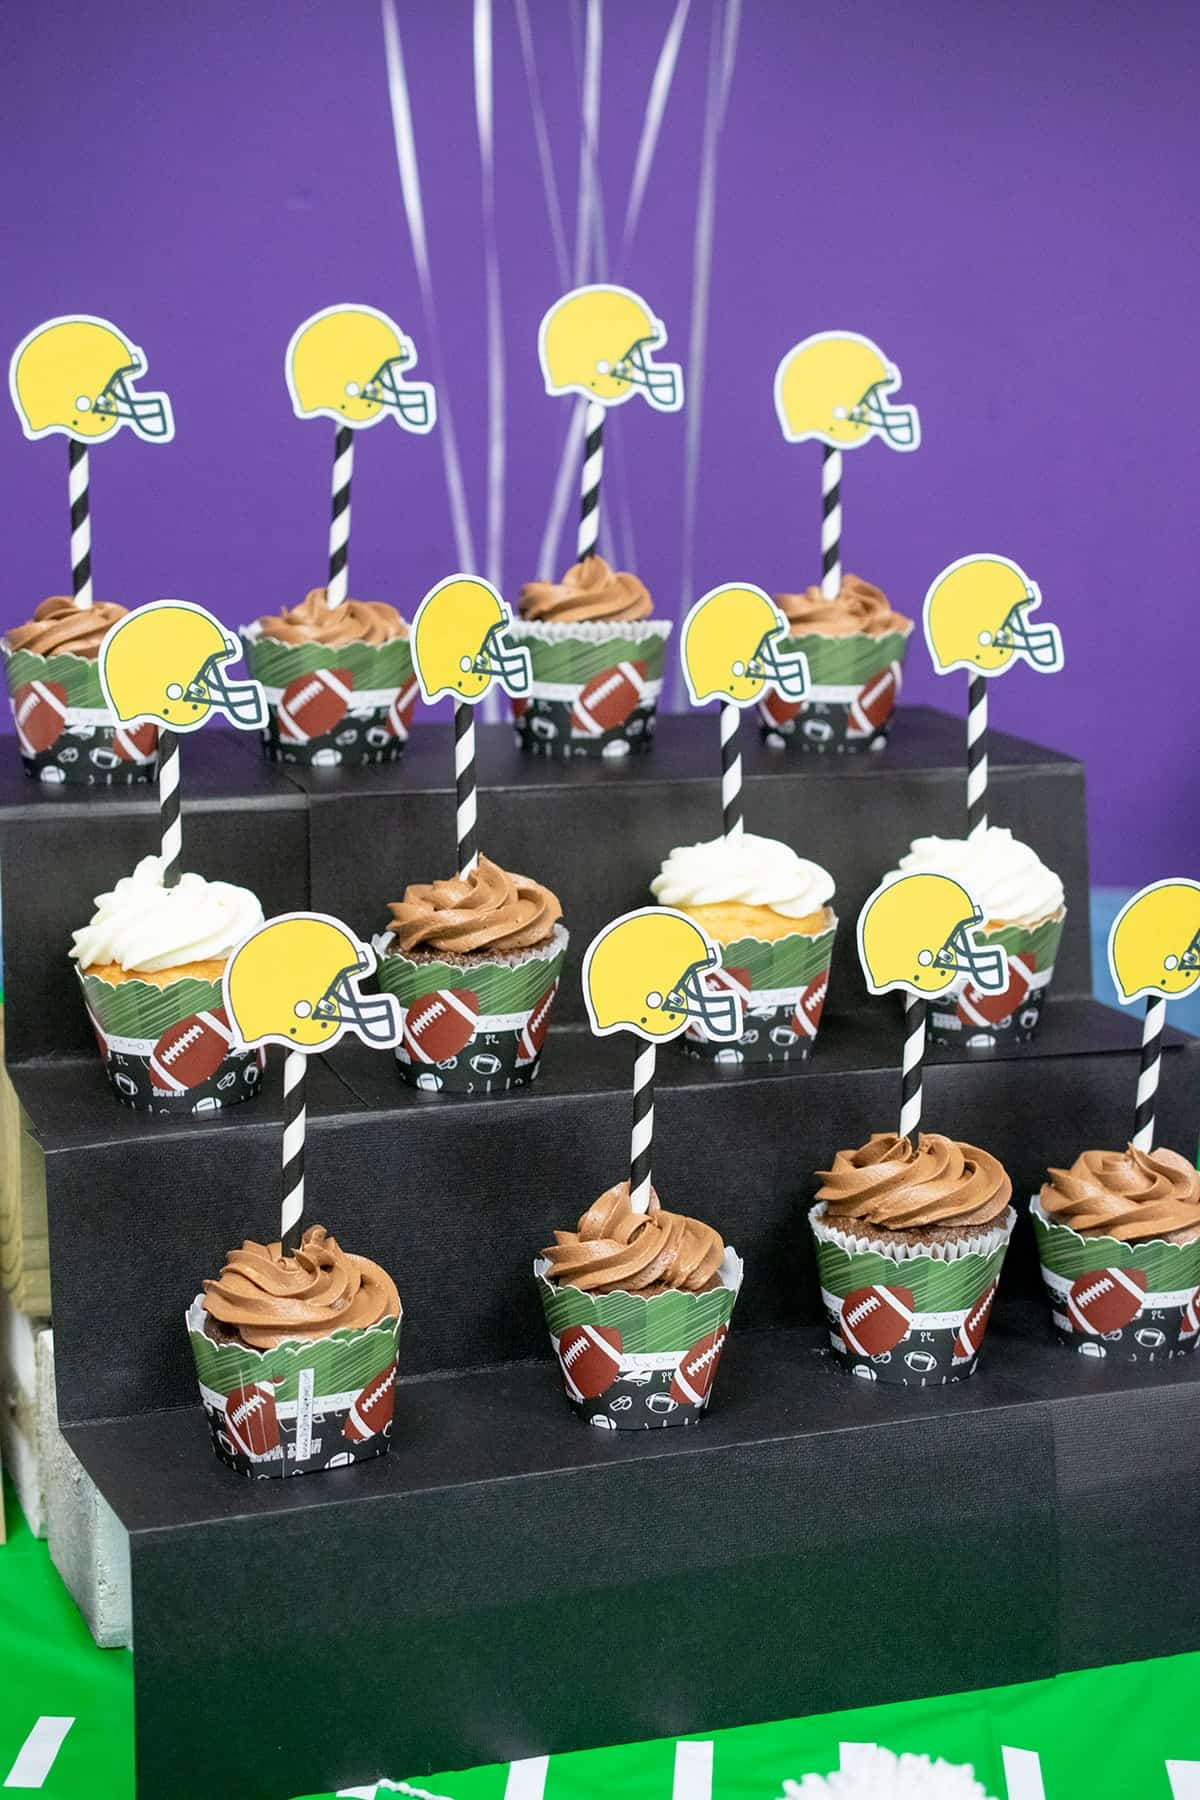 Football themed cupcakes on sports fan bleacher inspired stand with helmet cupcake toppers.